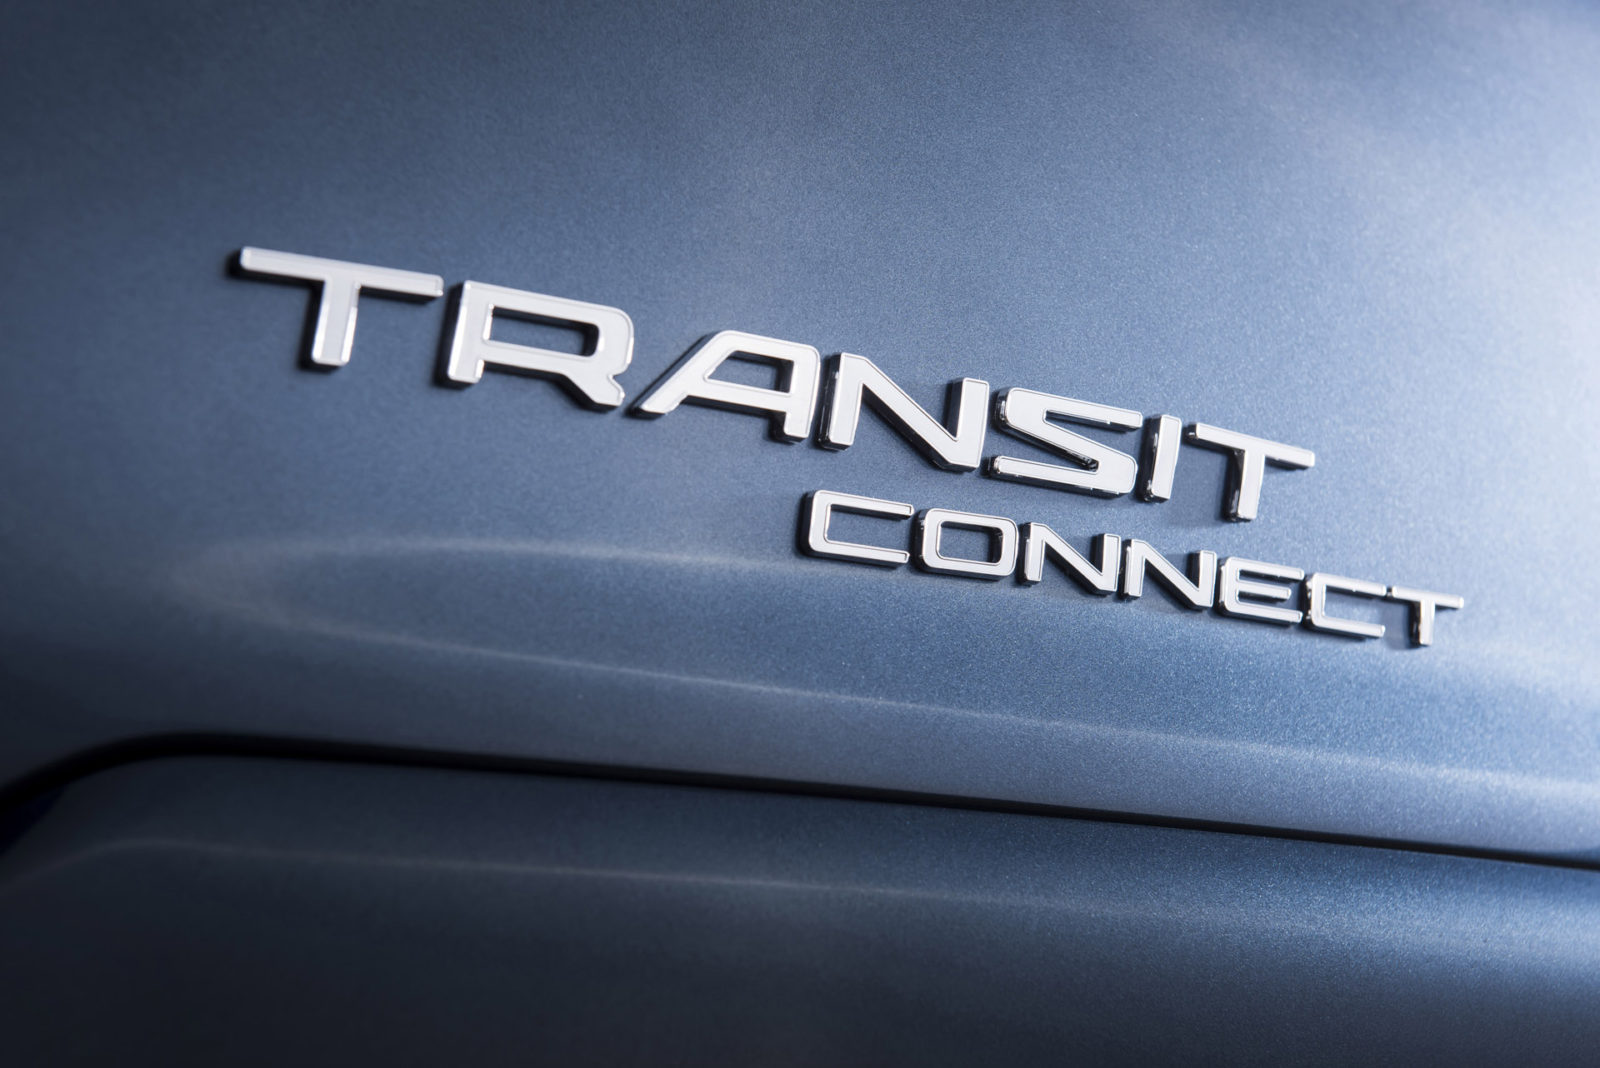 ford-recalls-more-than-200,000-transit-connect-vans-for-transmission-issue